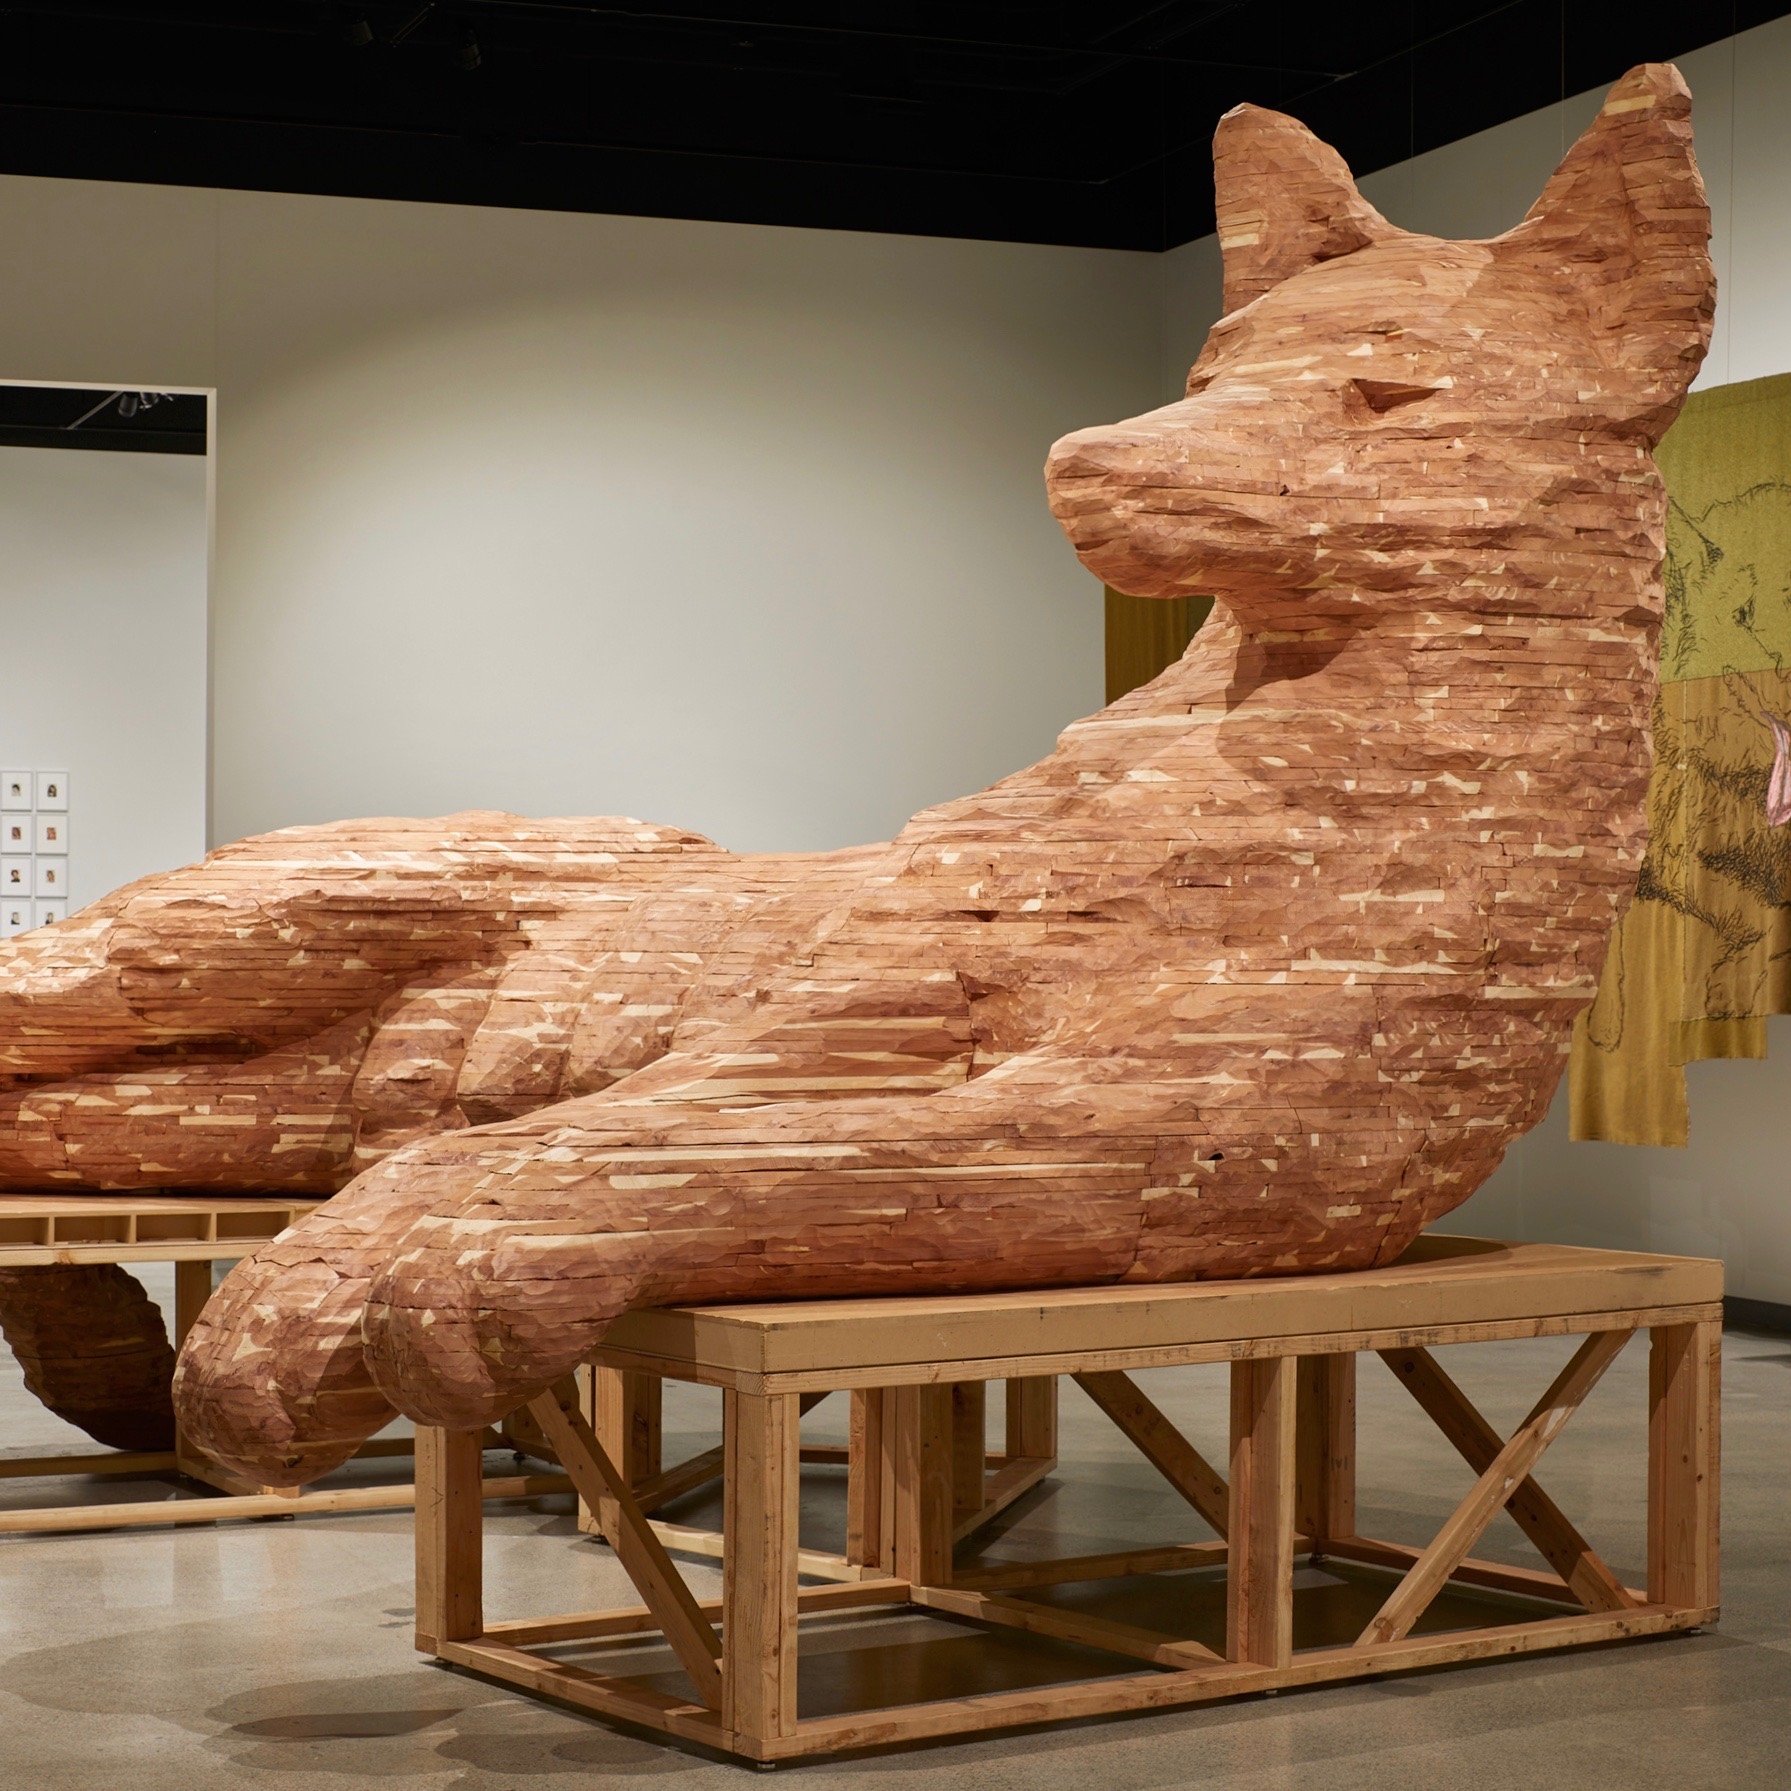 Companion Species - WSU via Krista Detwiler at the Sun Valley Museum of Art for use by 360 Magazine